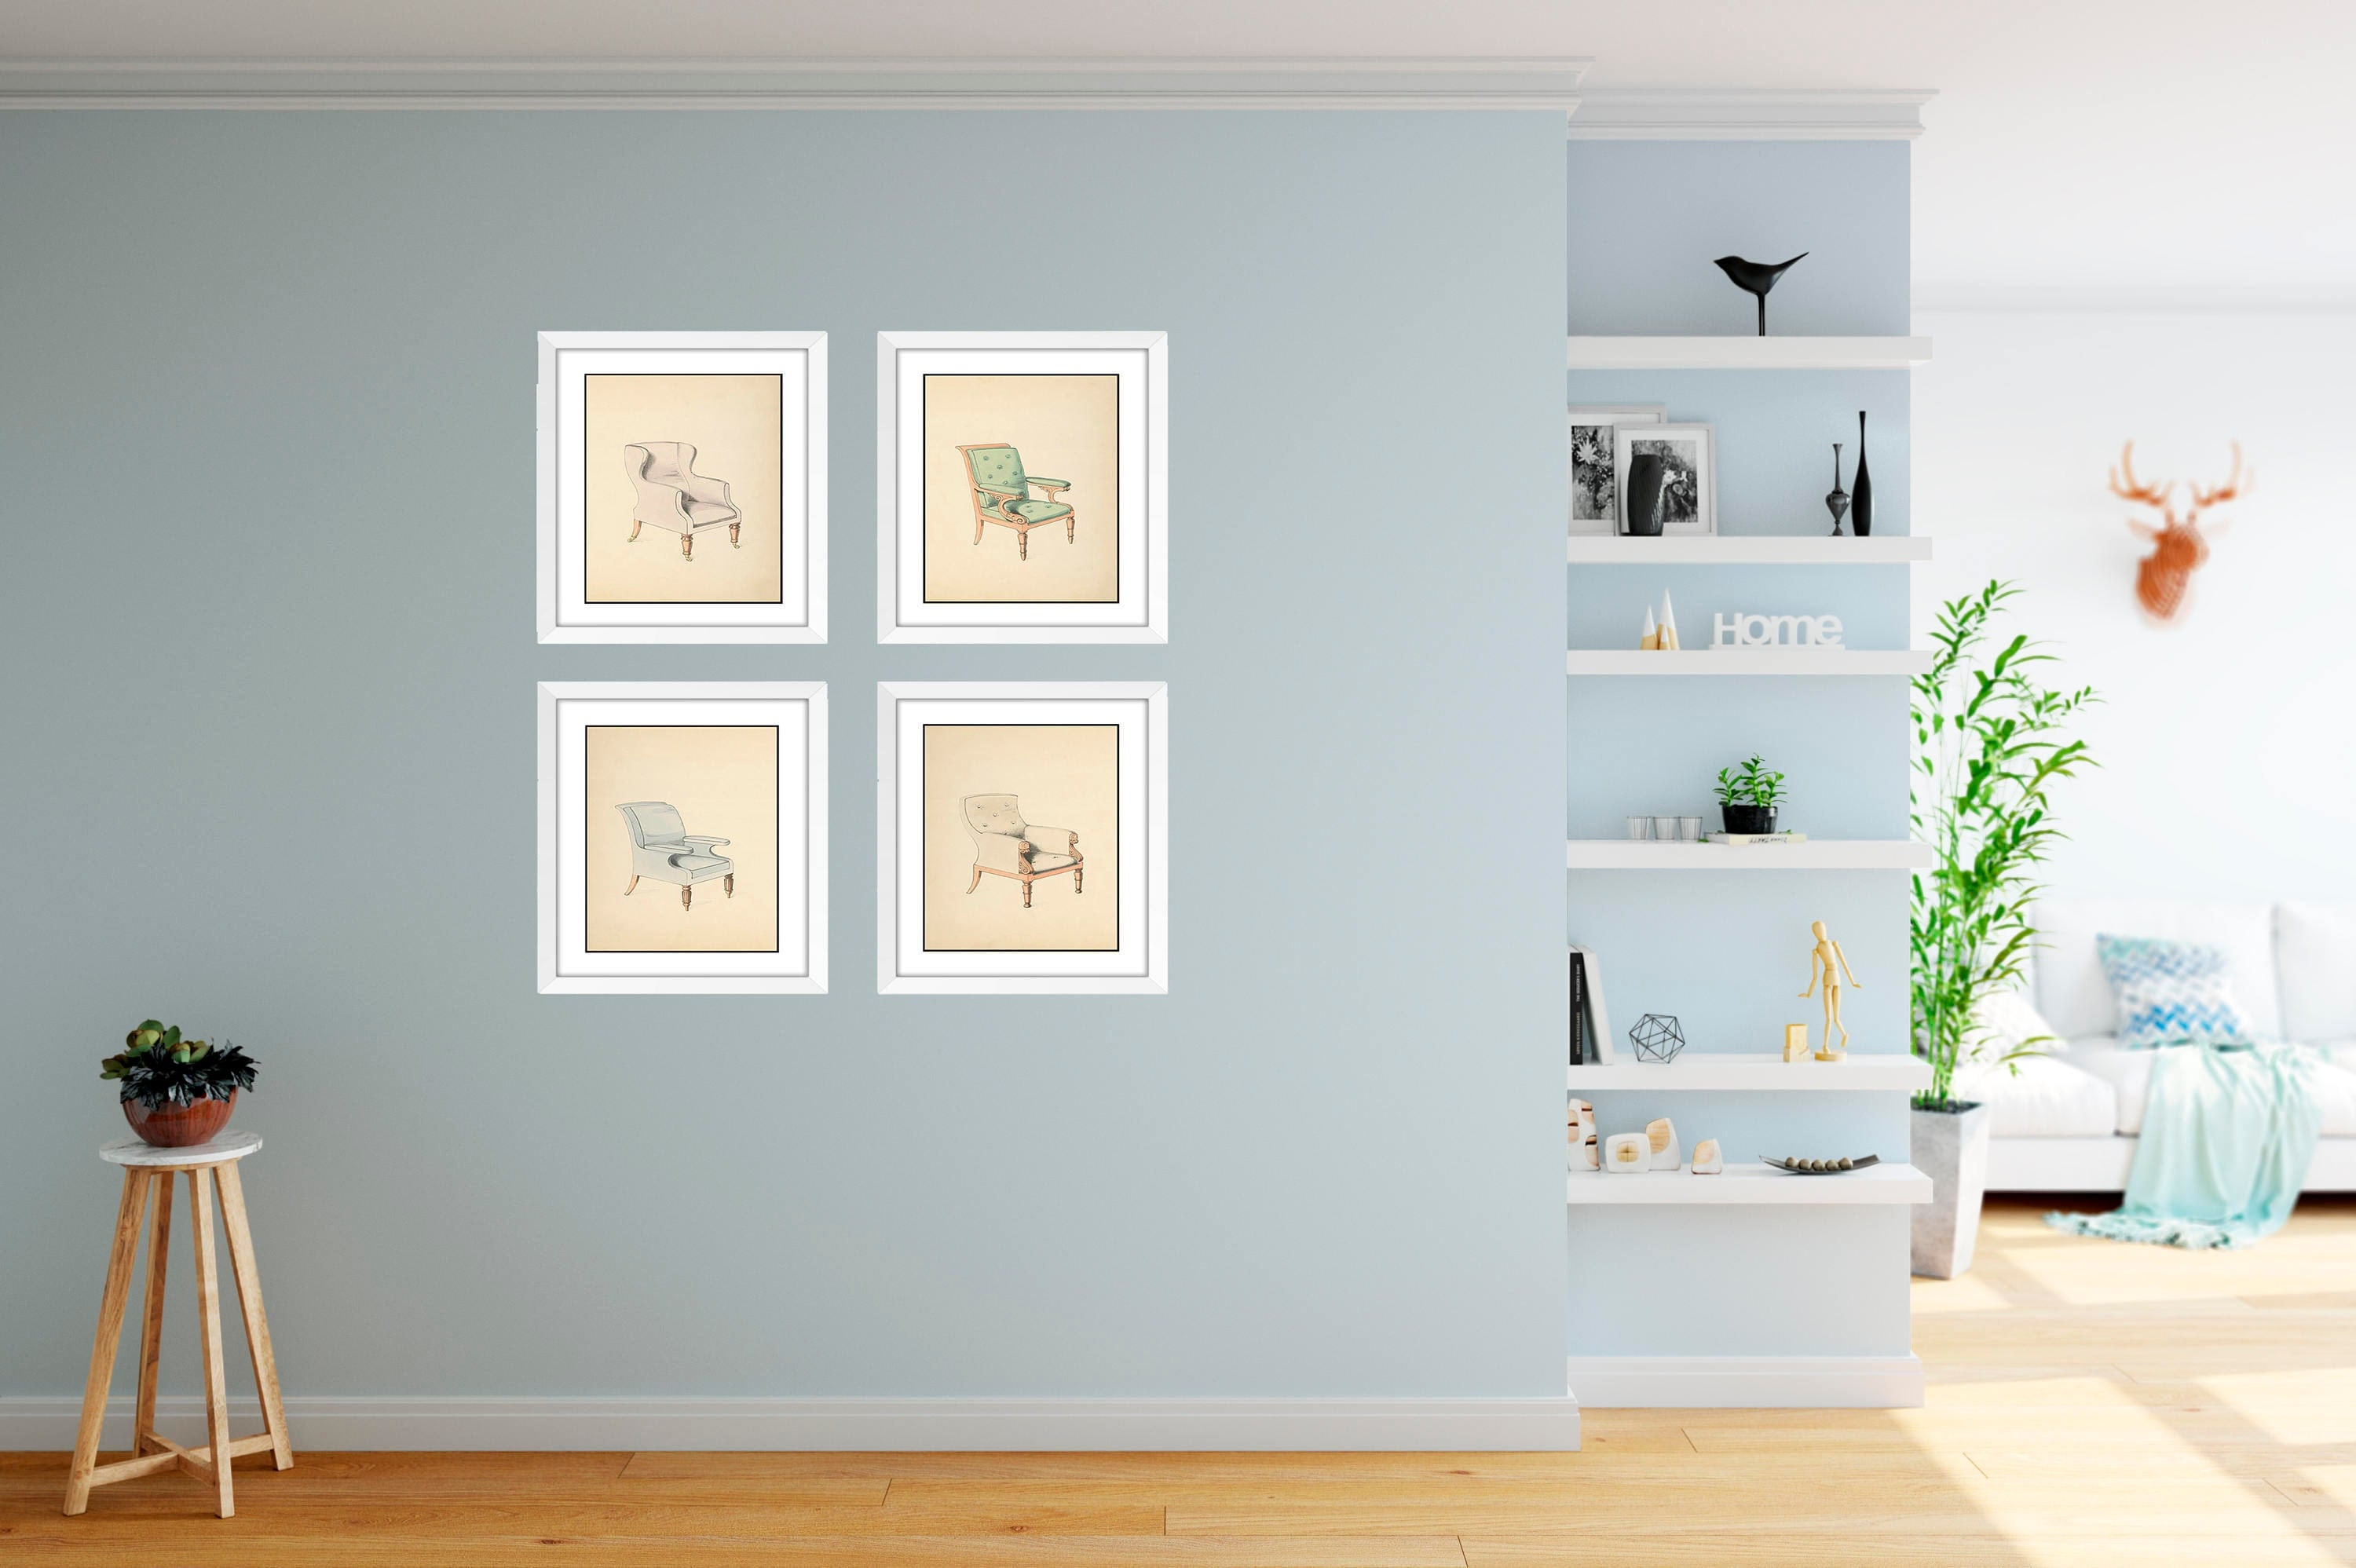 Chair Wall Art Prints, 4 Piece Framed Wall Set, Dining Room Decor ...